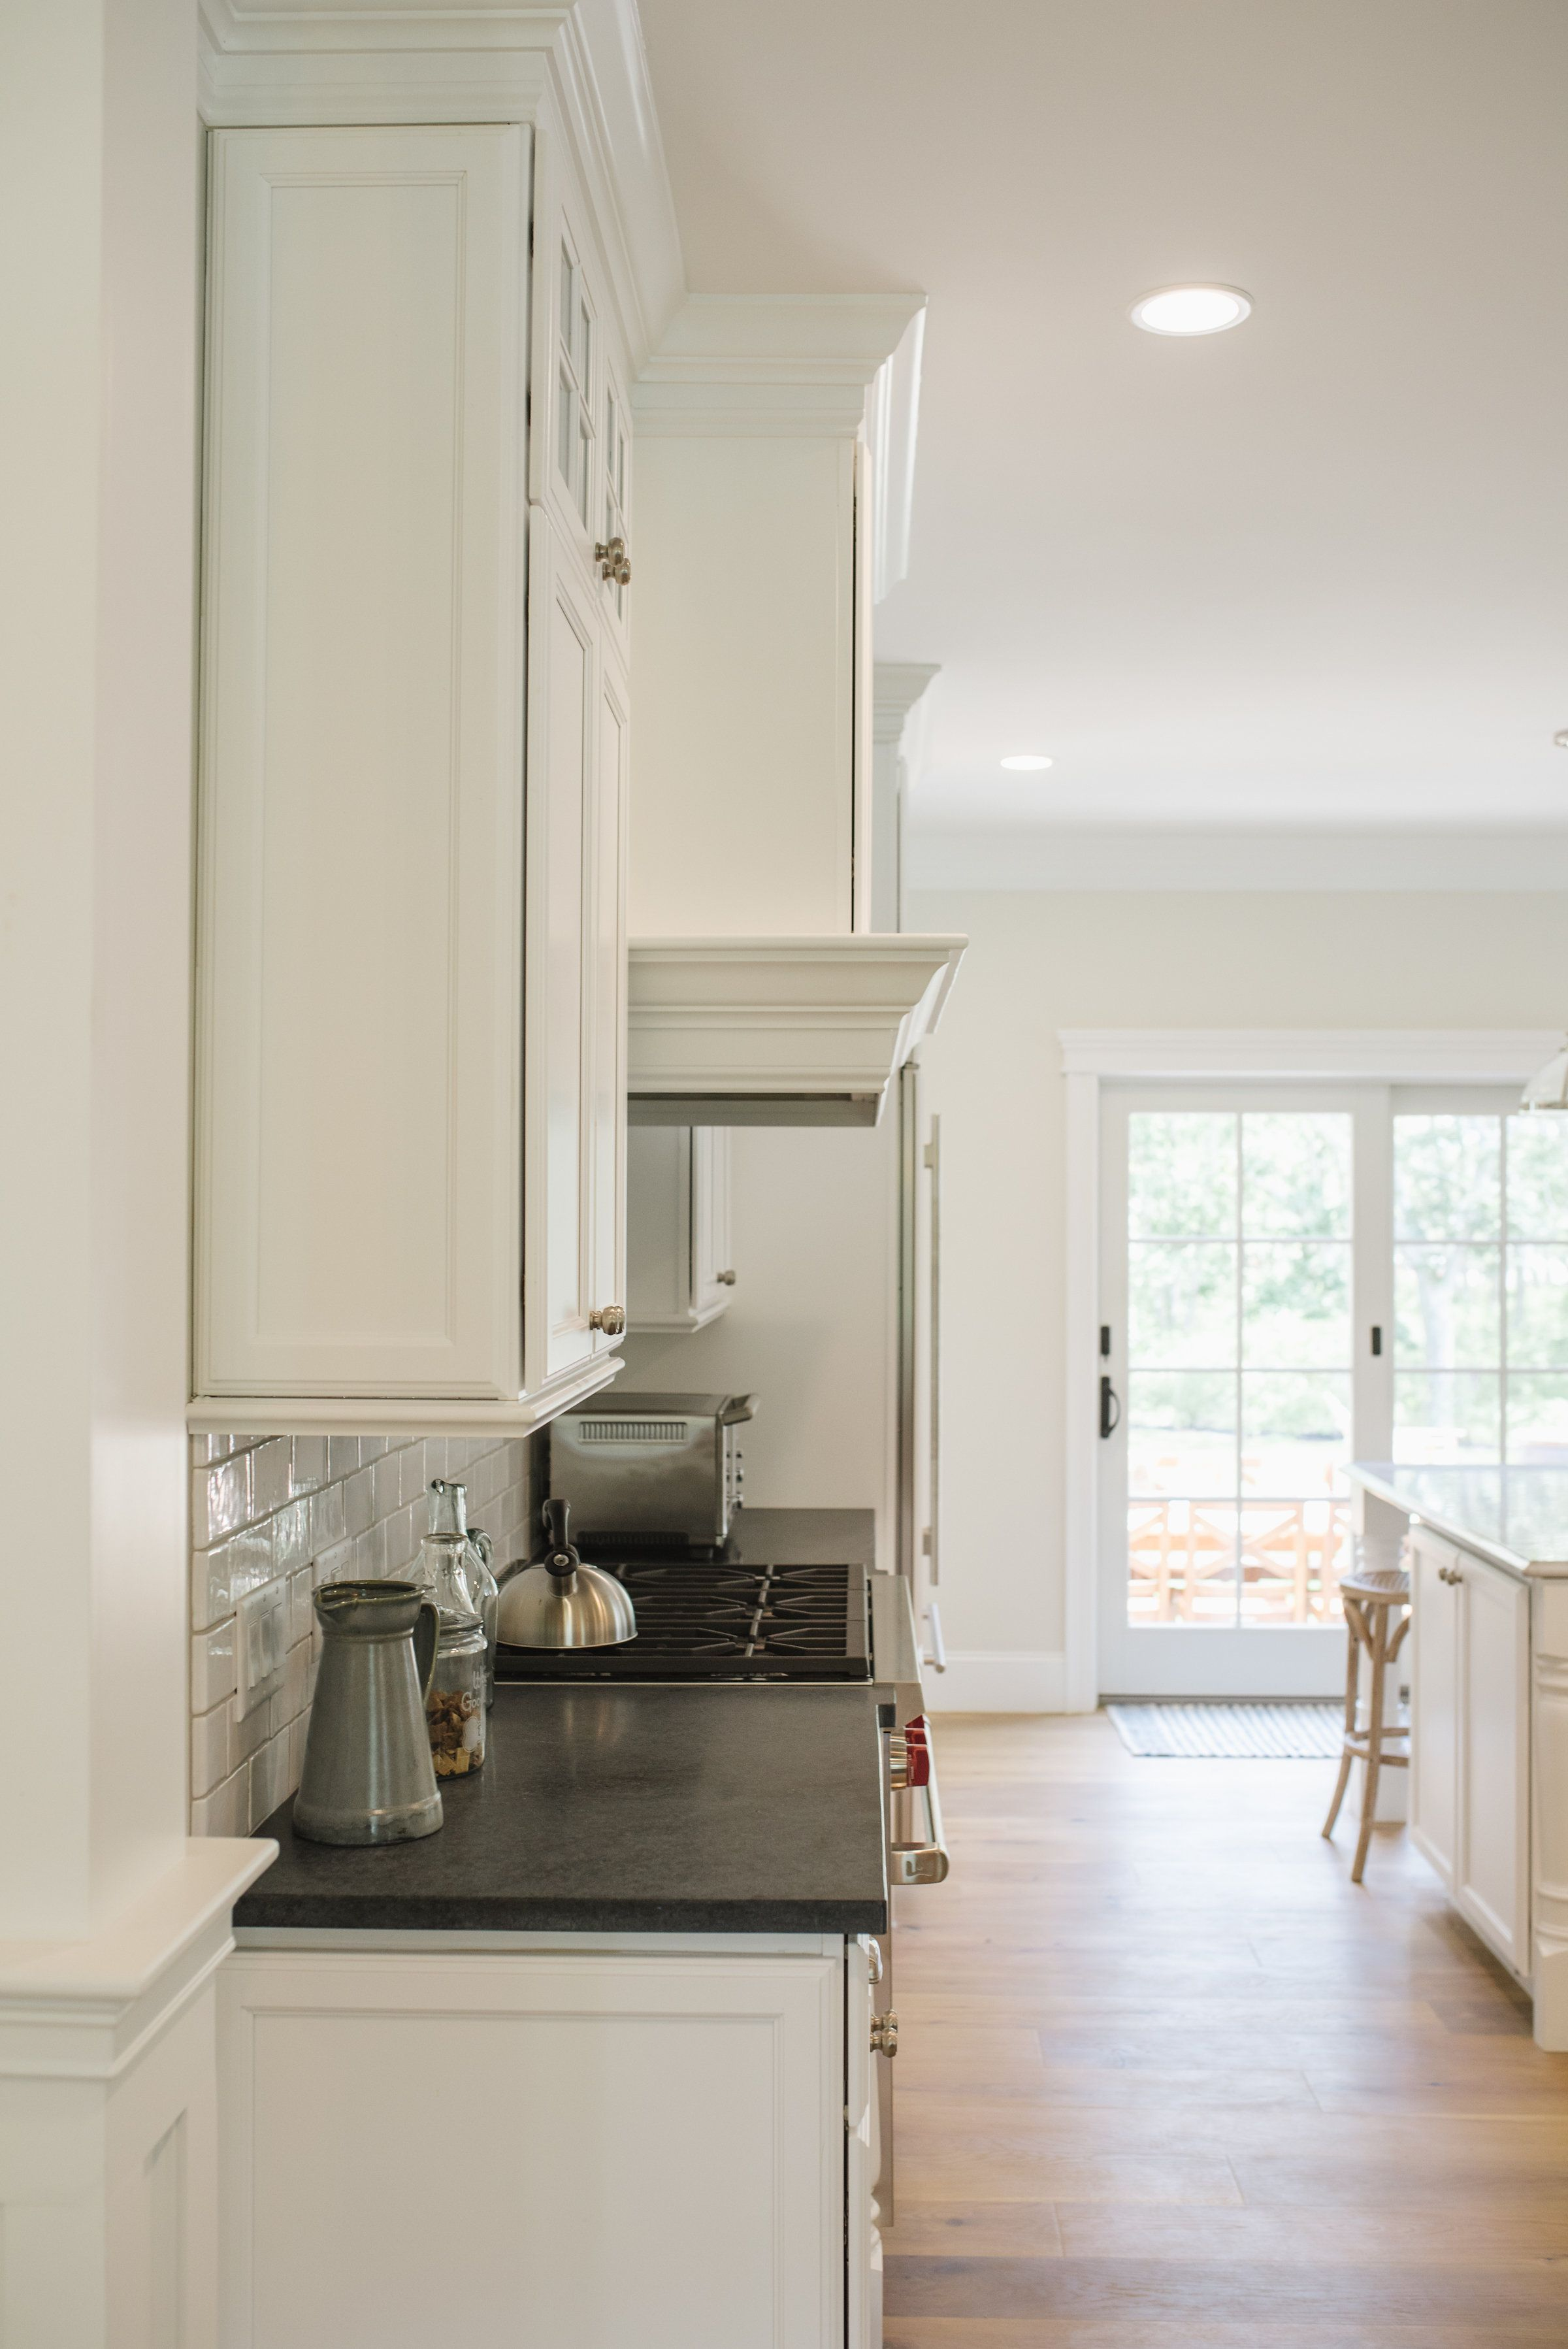 Photographed by clement and west nantucket door style true white designed by kevin at cape island kitchens kitchen cabinets are made in america